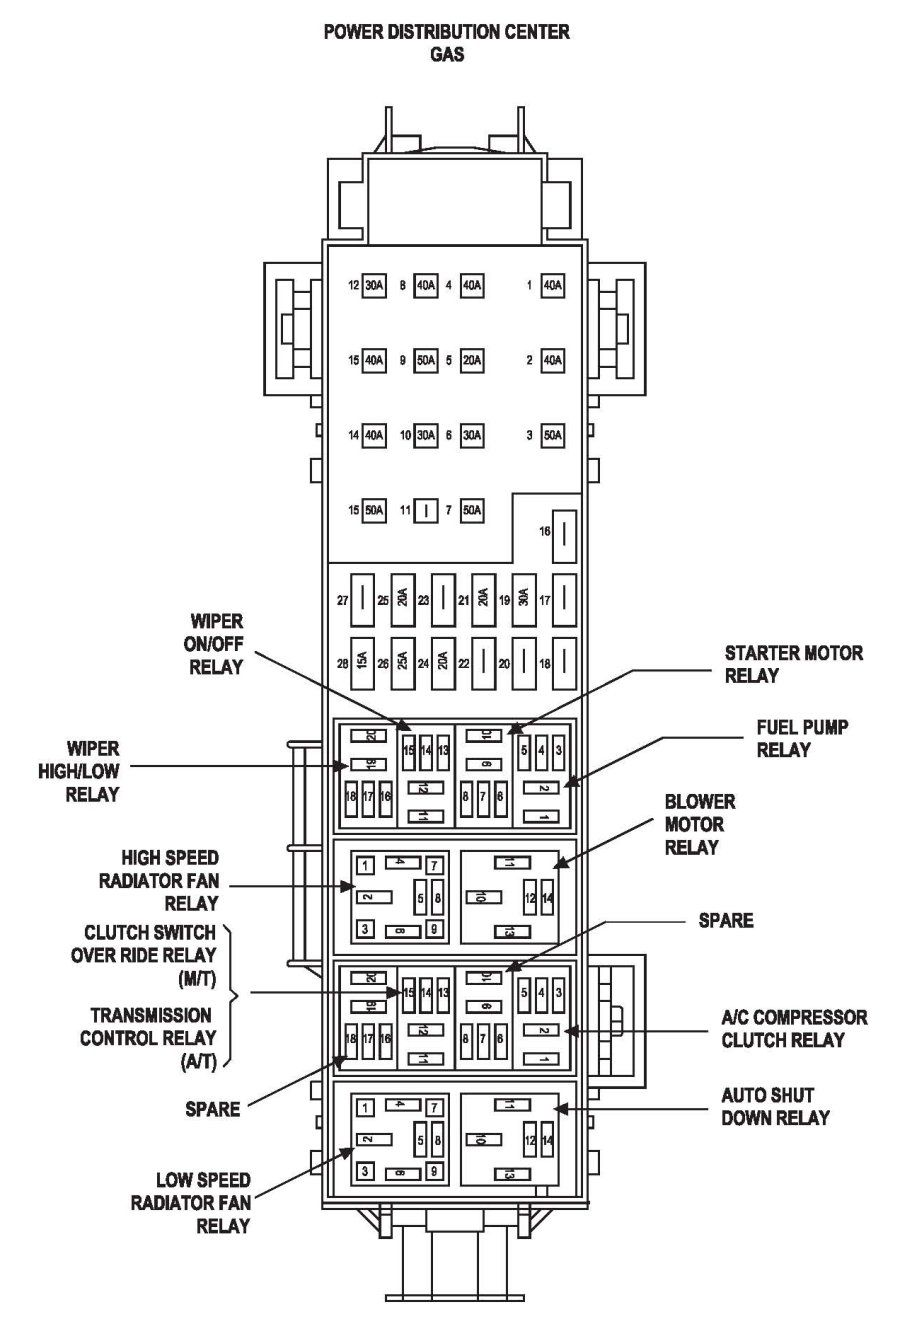 b3536c3739783eb19f827744cc42c3c4 jeep liberty fuse box diagram image details jeep liberty dodge nitro fuse box at n-0.co